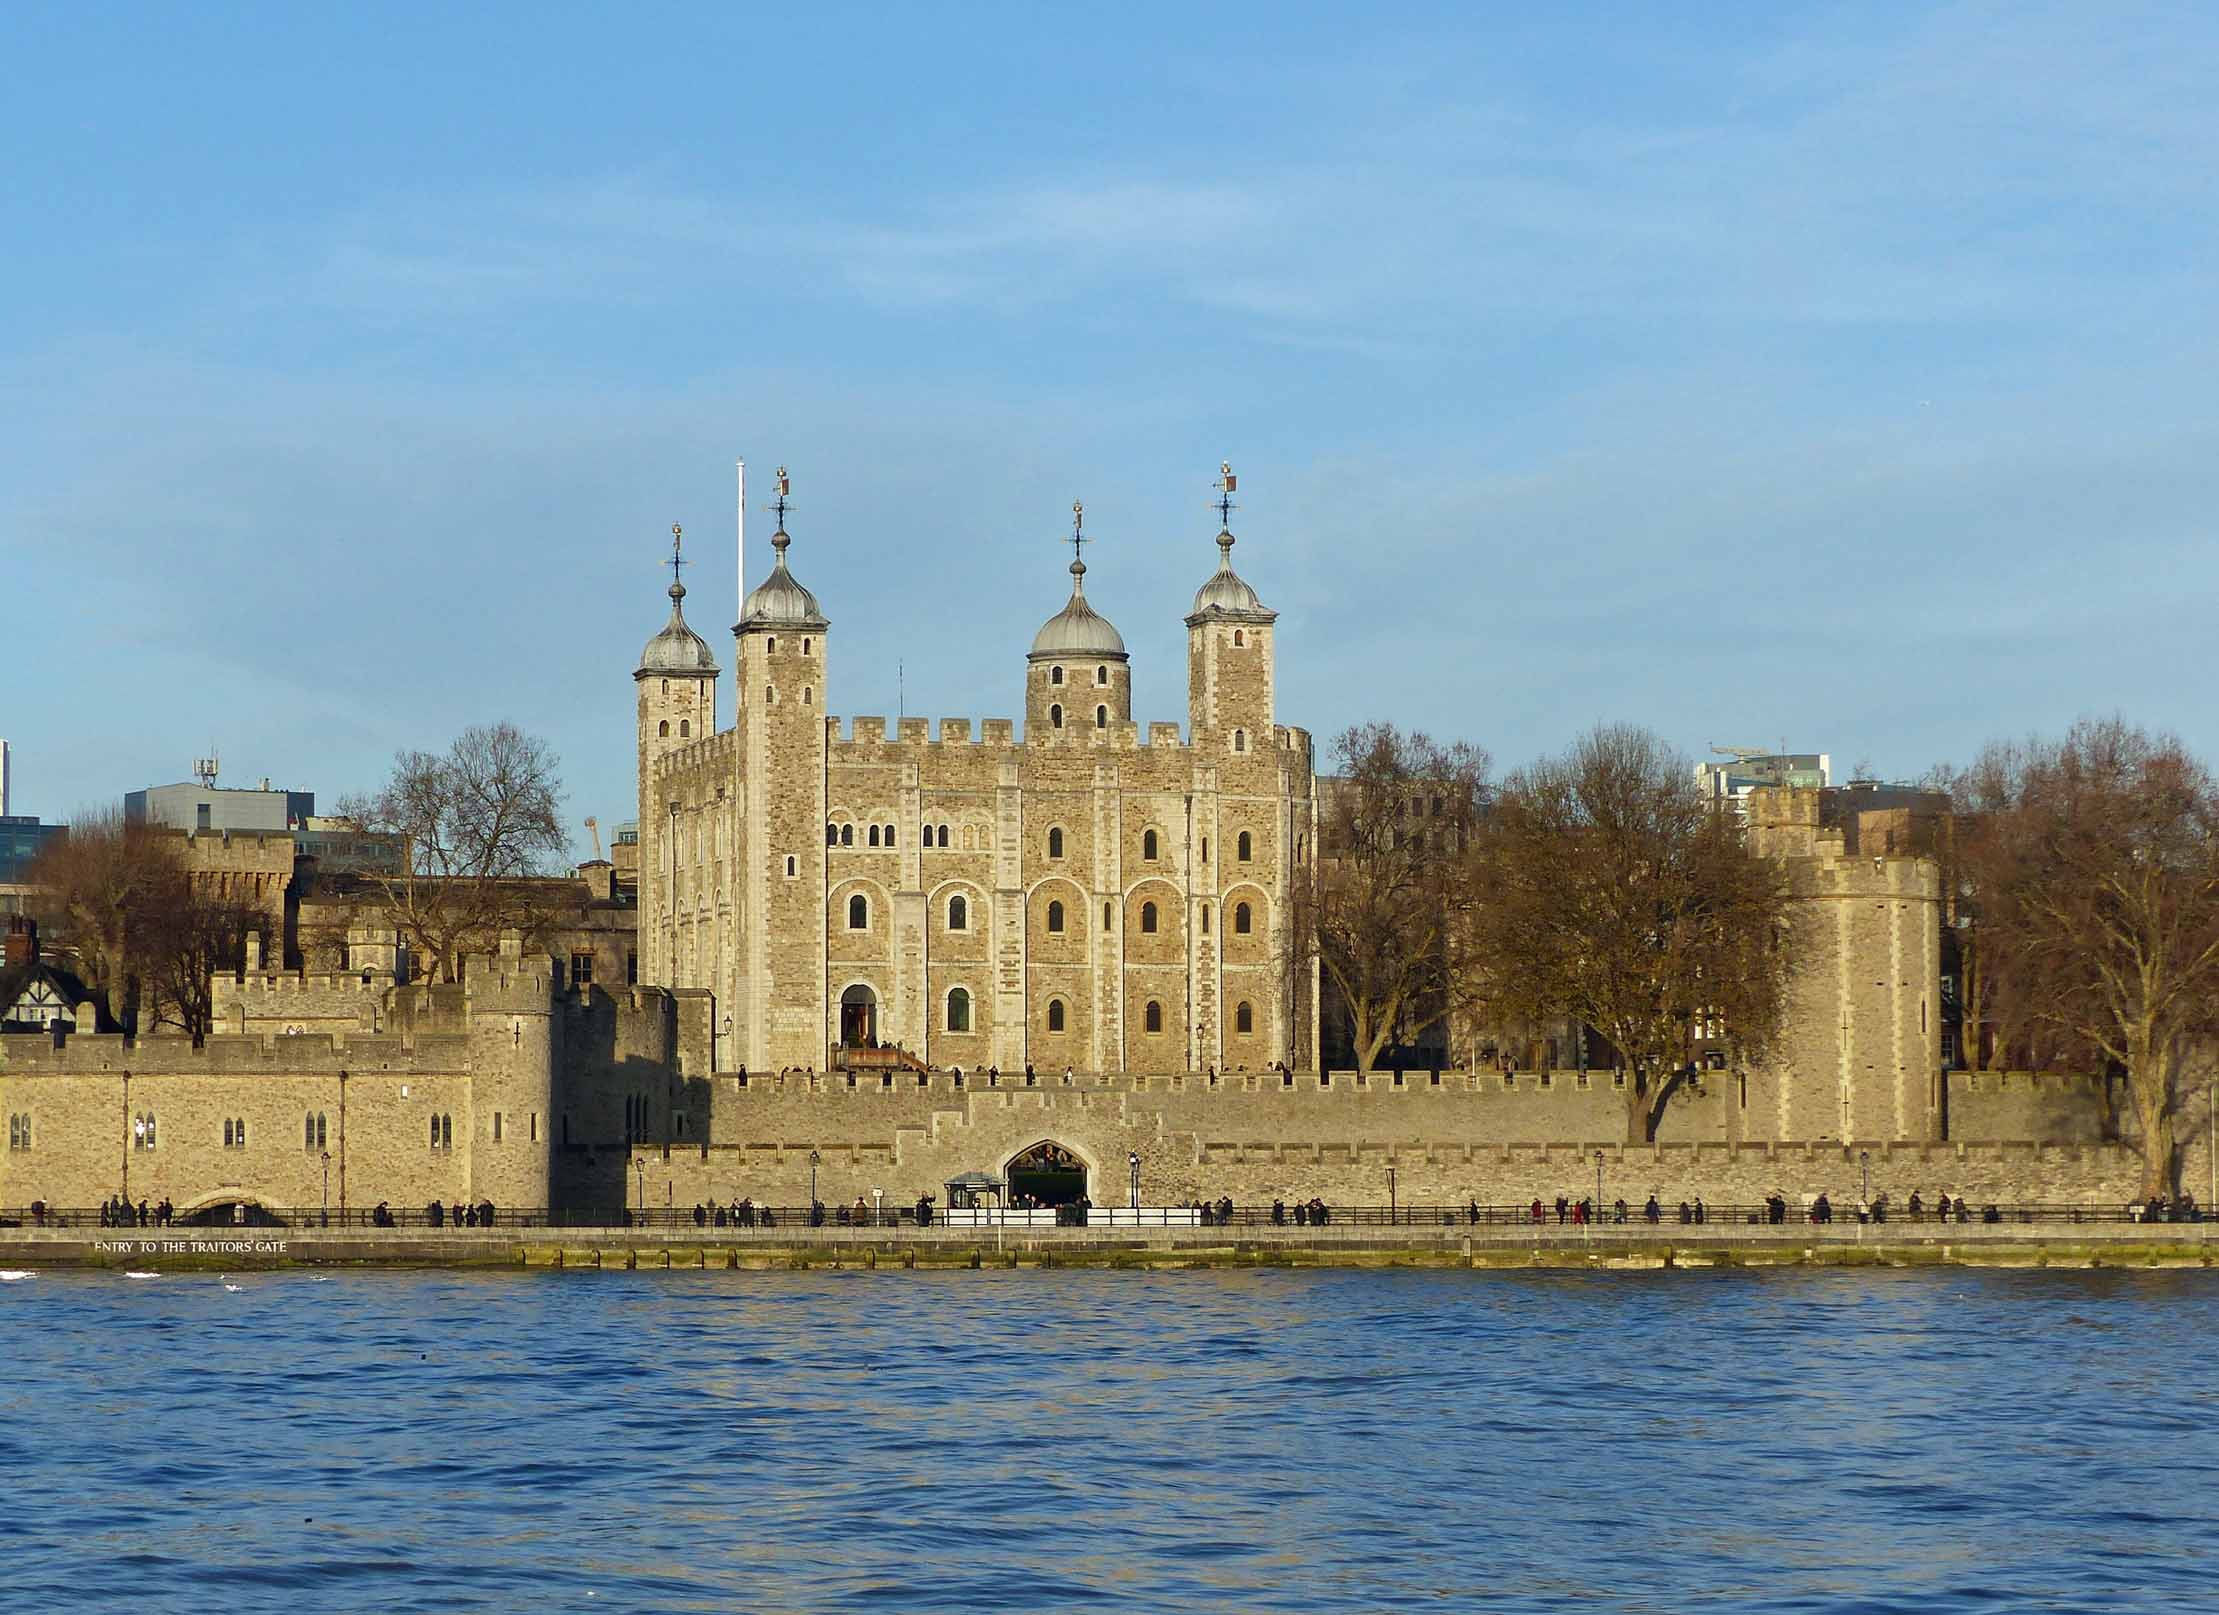 Tower of London with Thames in the foreground